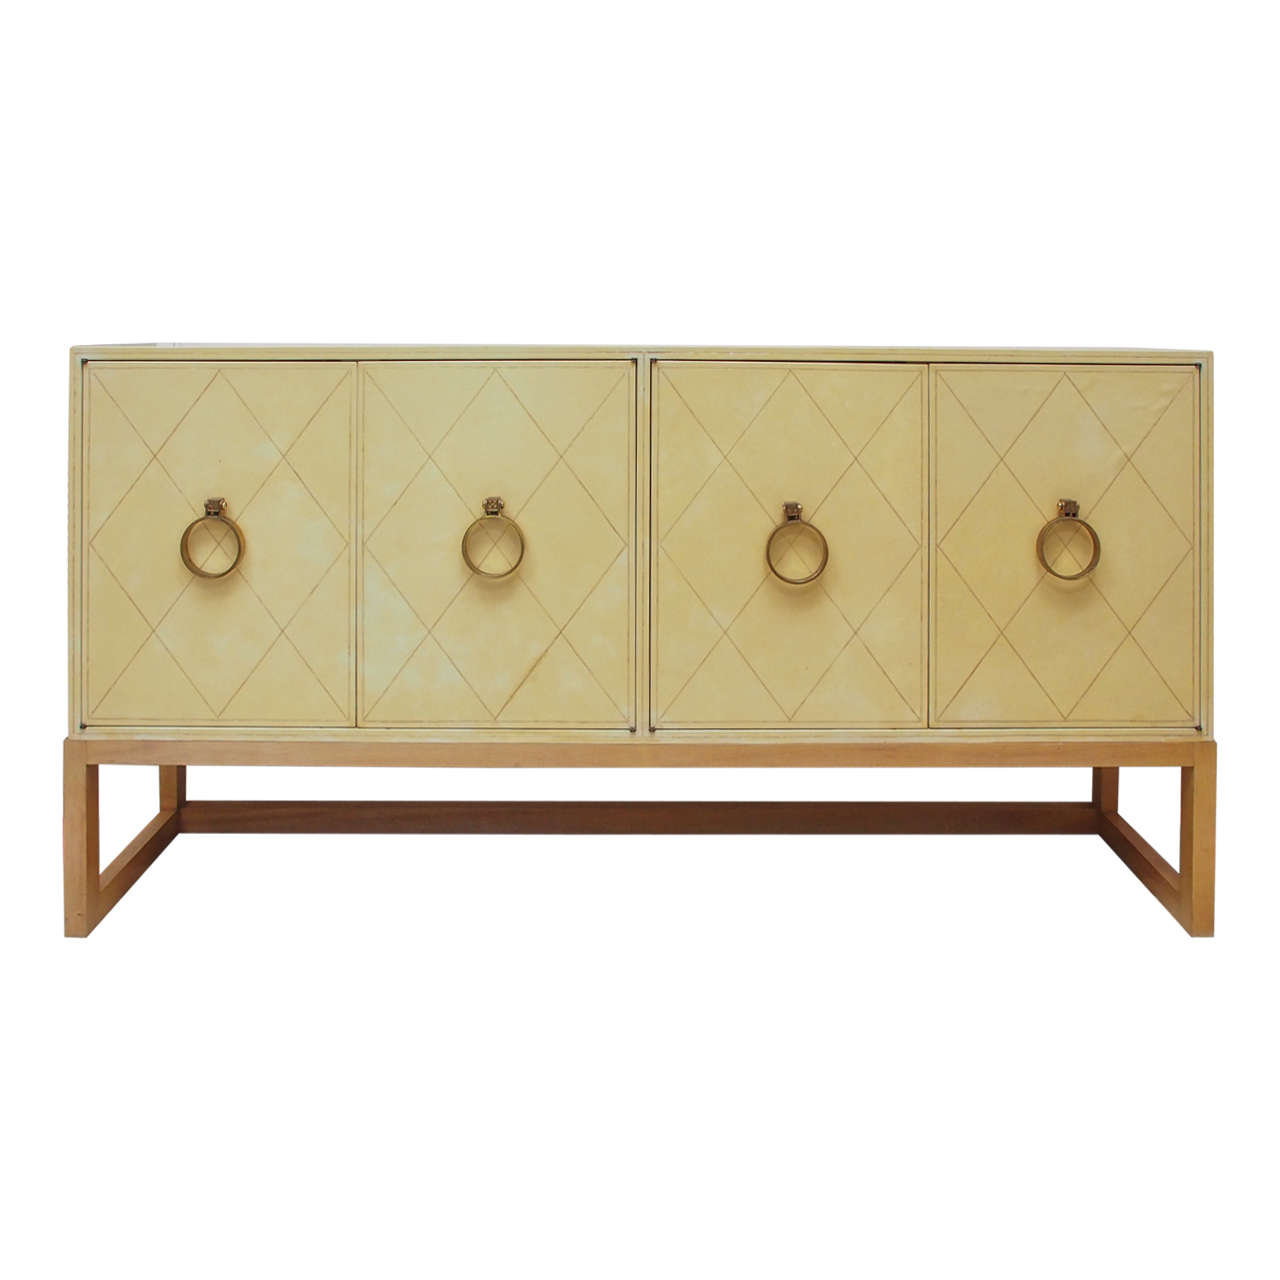 NEW PRICE SALE Exceptional Four-Door Credenza by Tommi Parzinger, circa 1940s 1